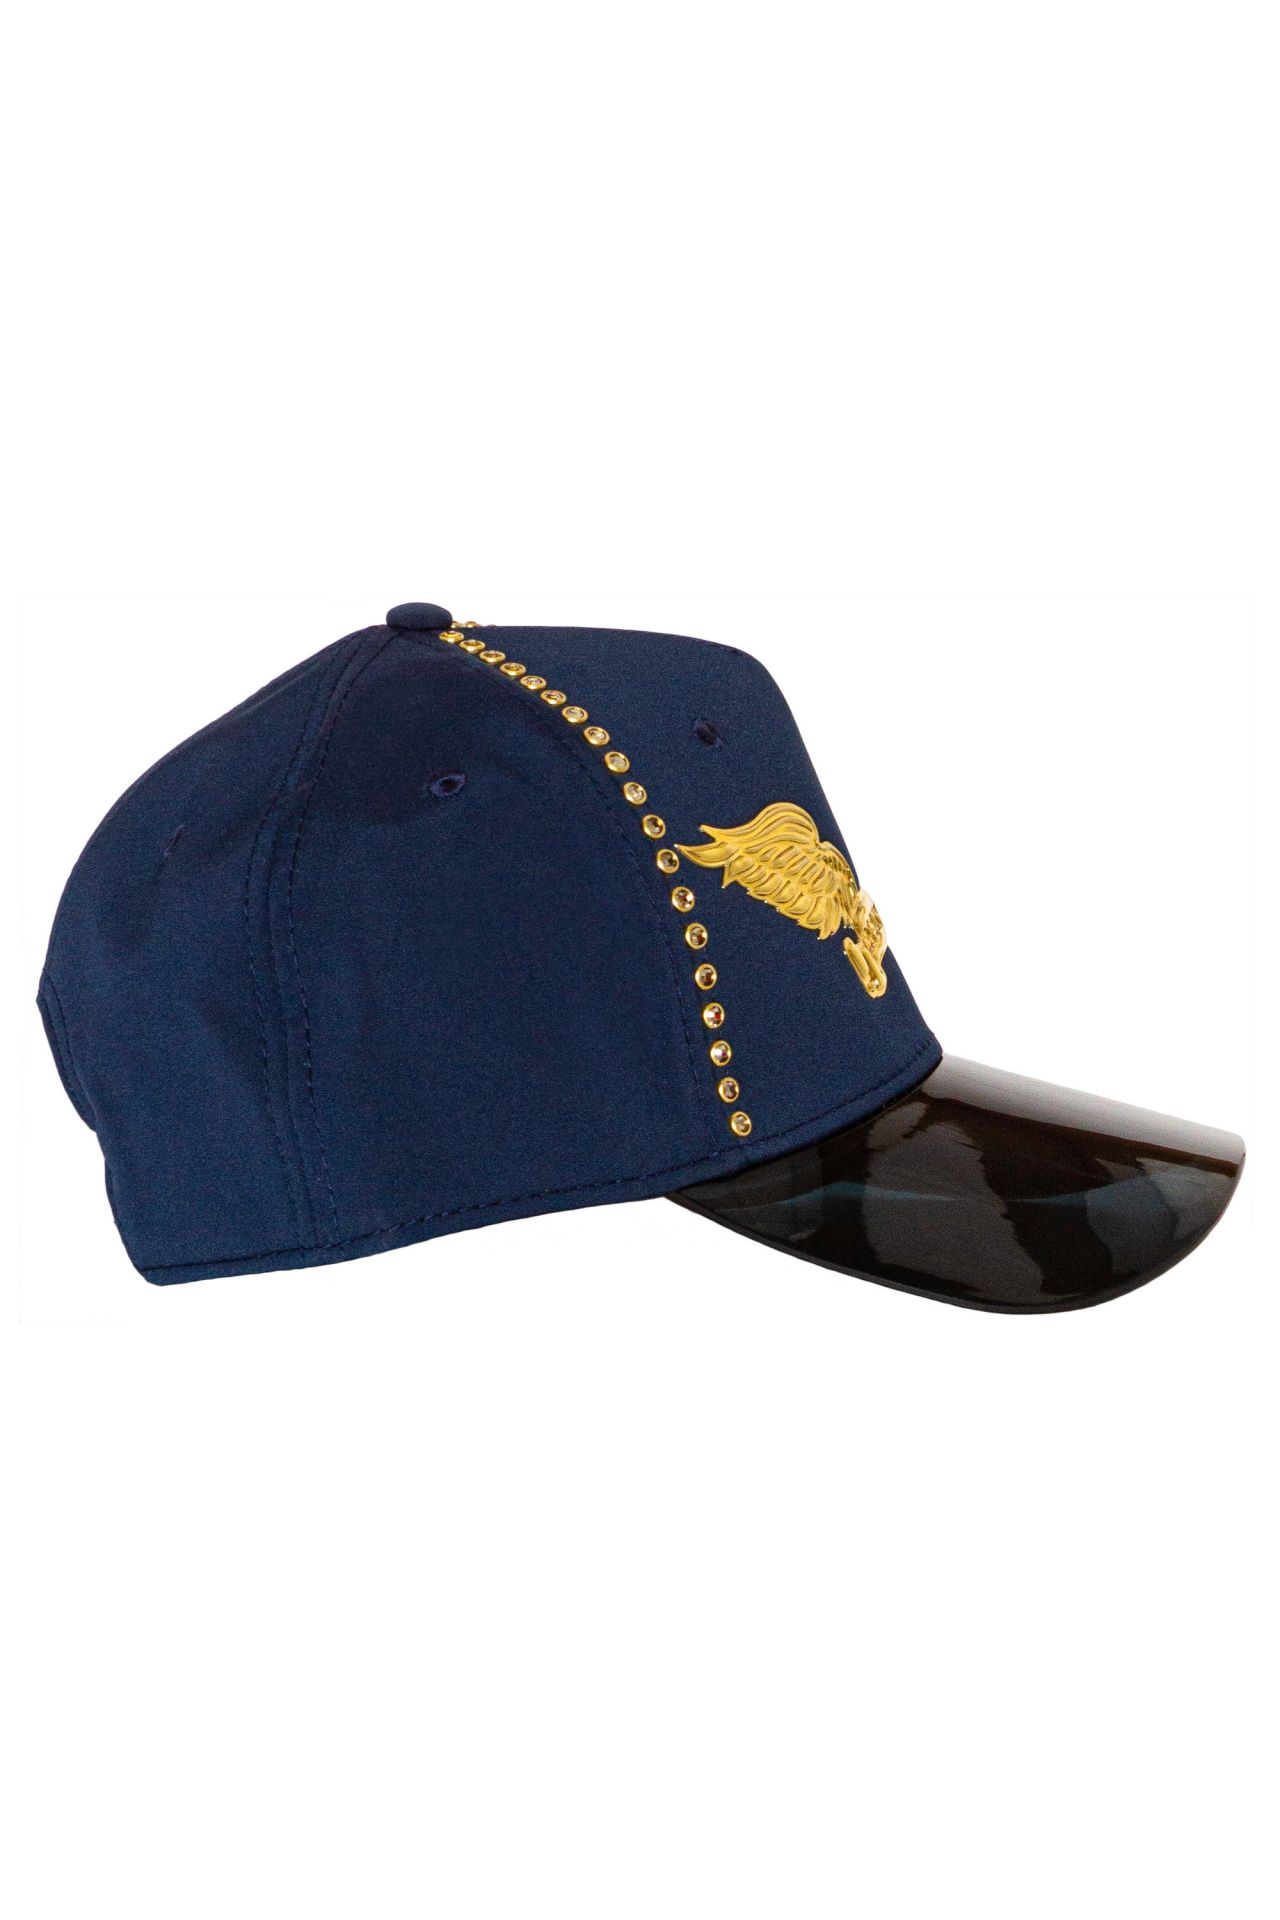 VISOR CAP IN NAVY WITH OUTLINED CRYSTALS